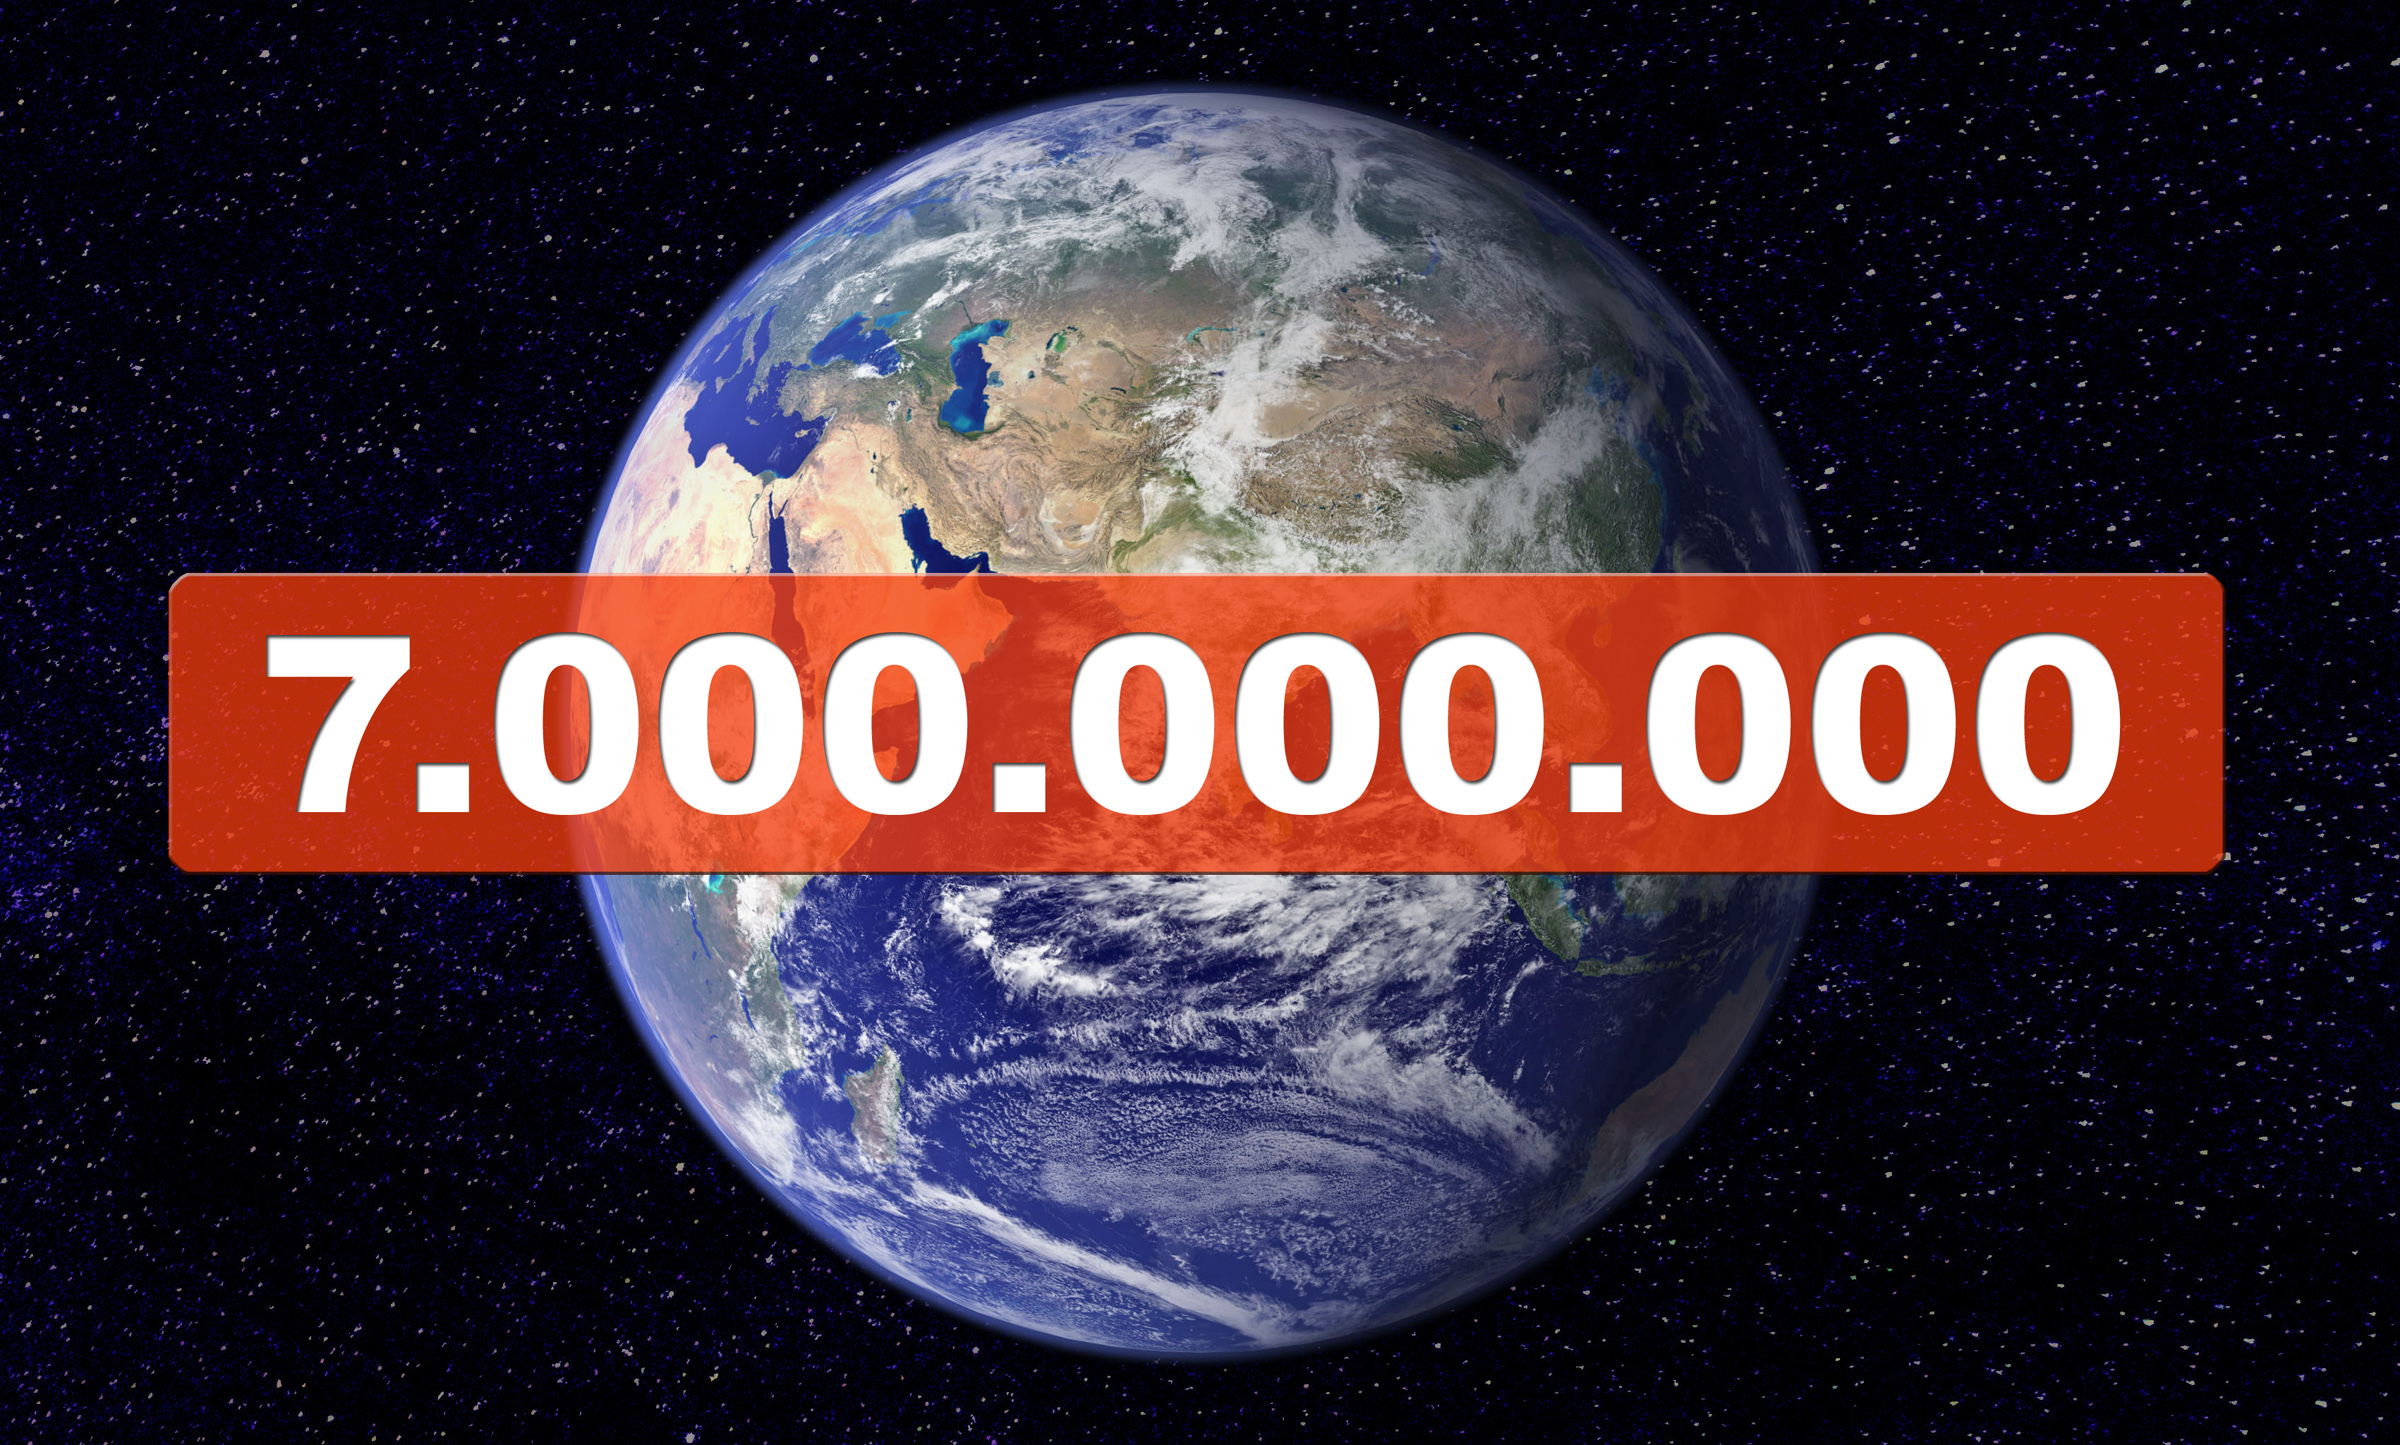 7 million people live on earth in October 2011